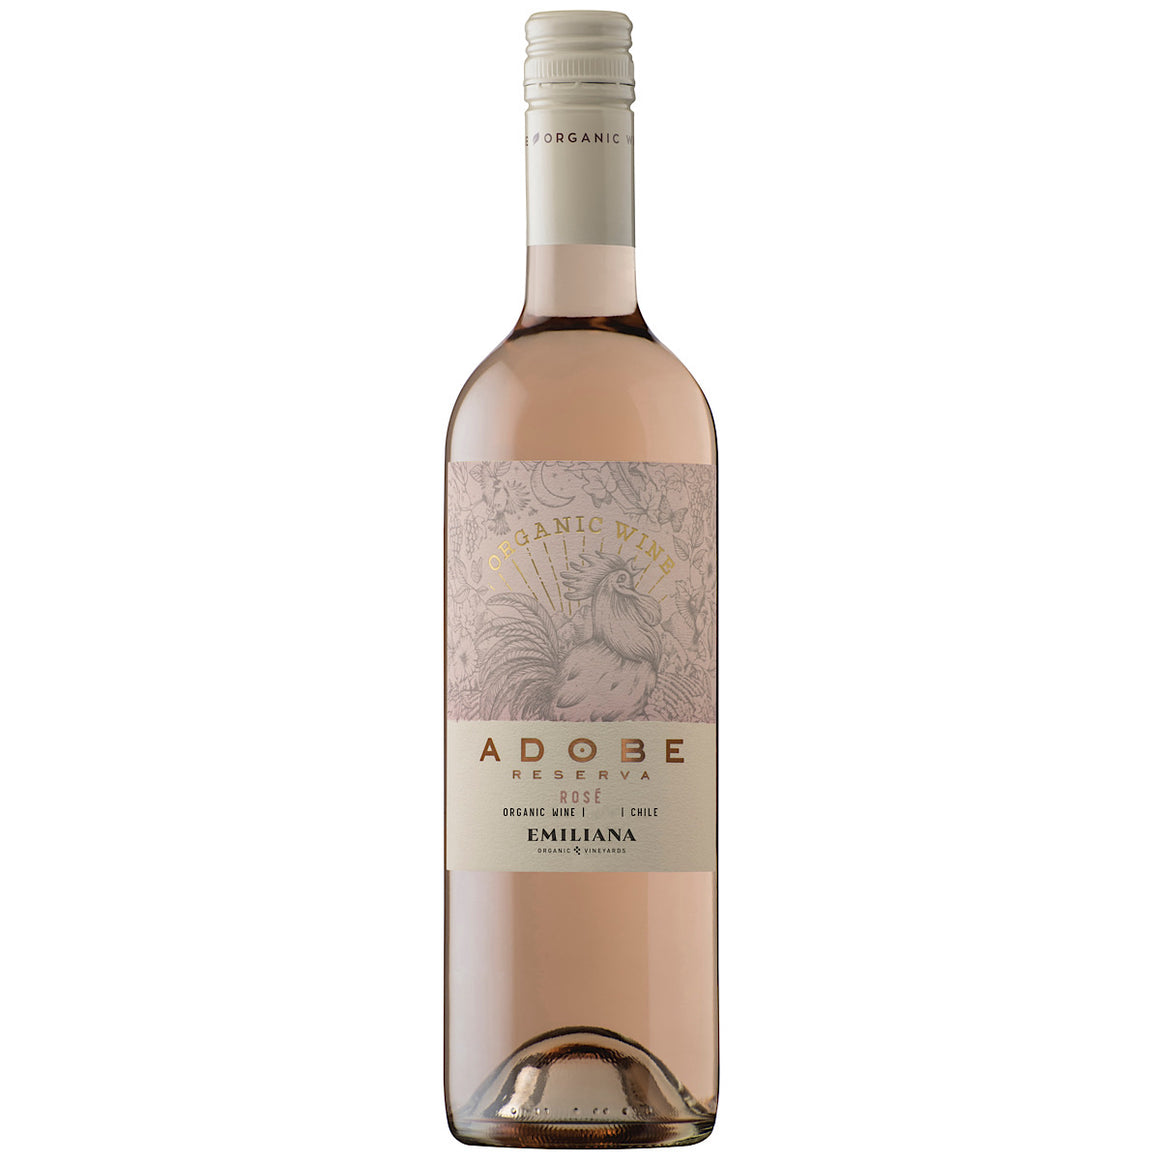 Adobe Reserva Rosé 12 Bottle Case 75cl